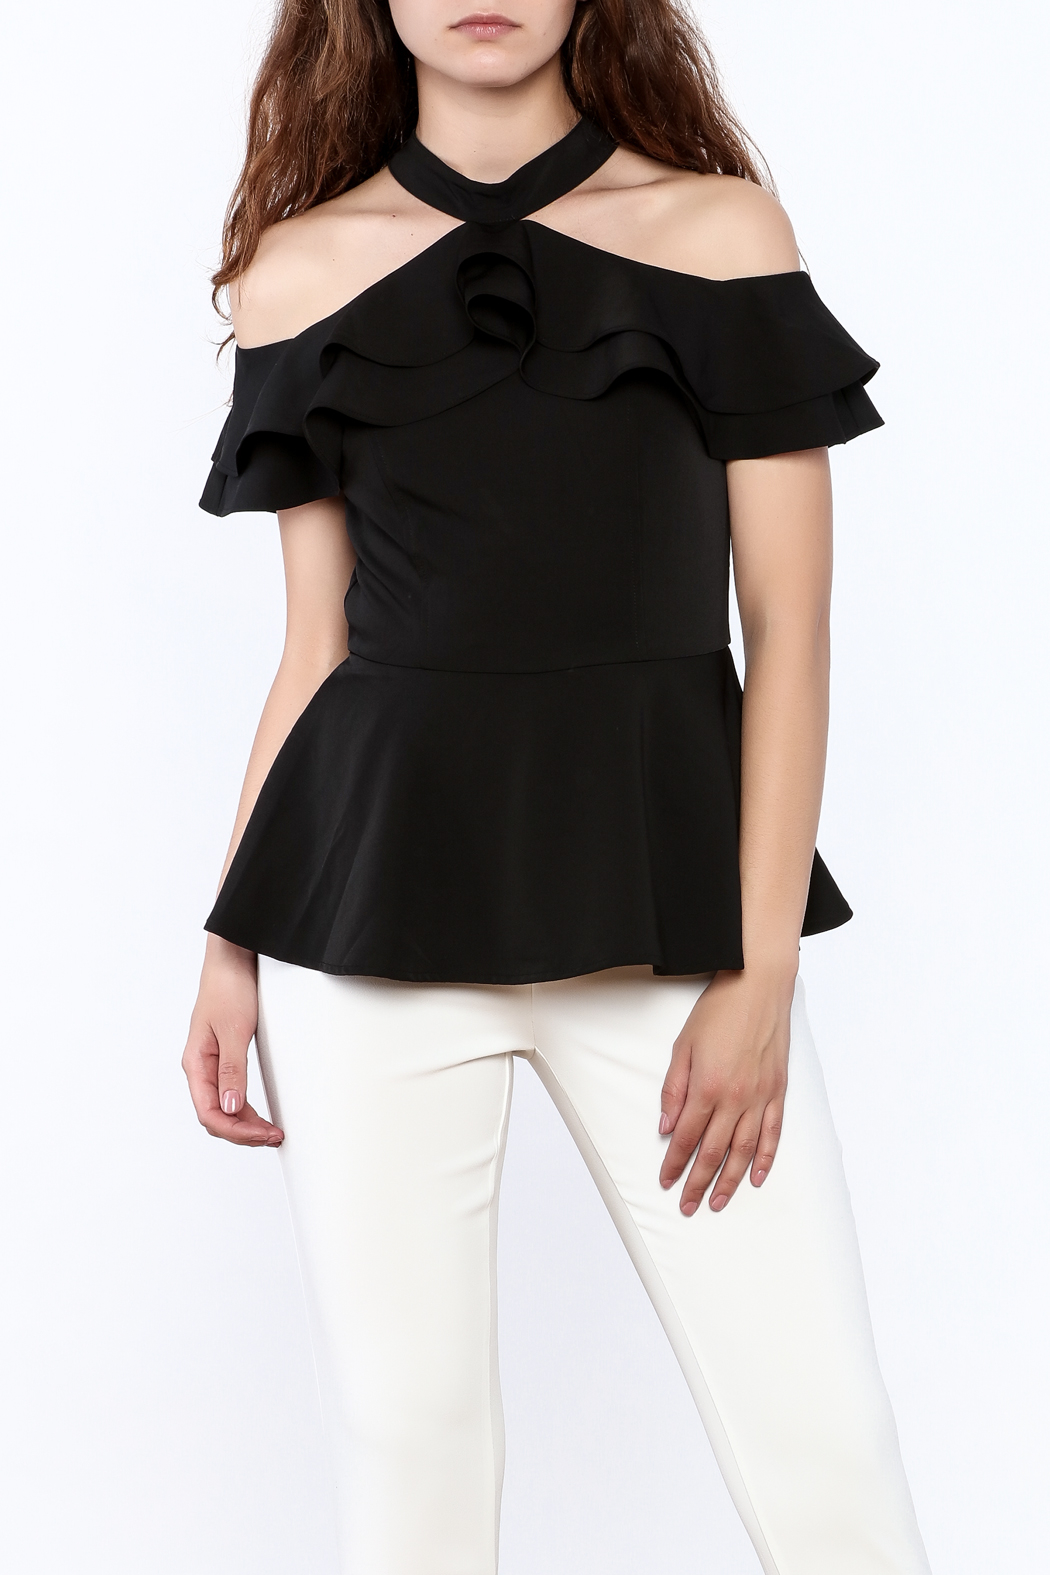 Gracia Ruffle Sleeveless Top - Main Image